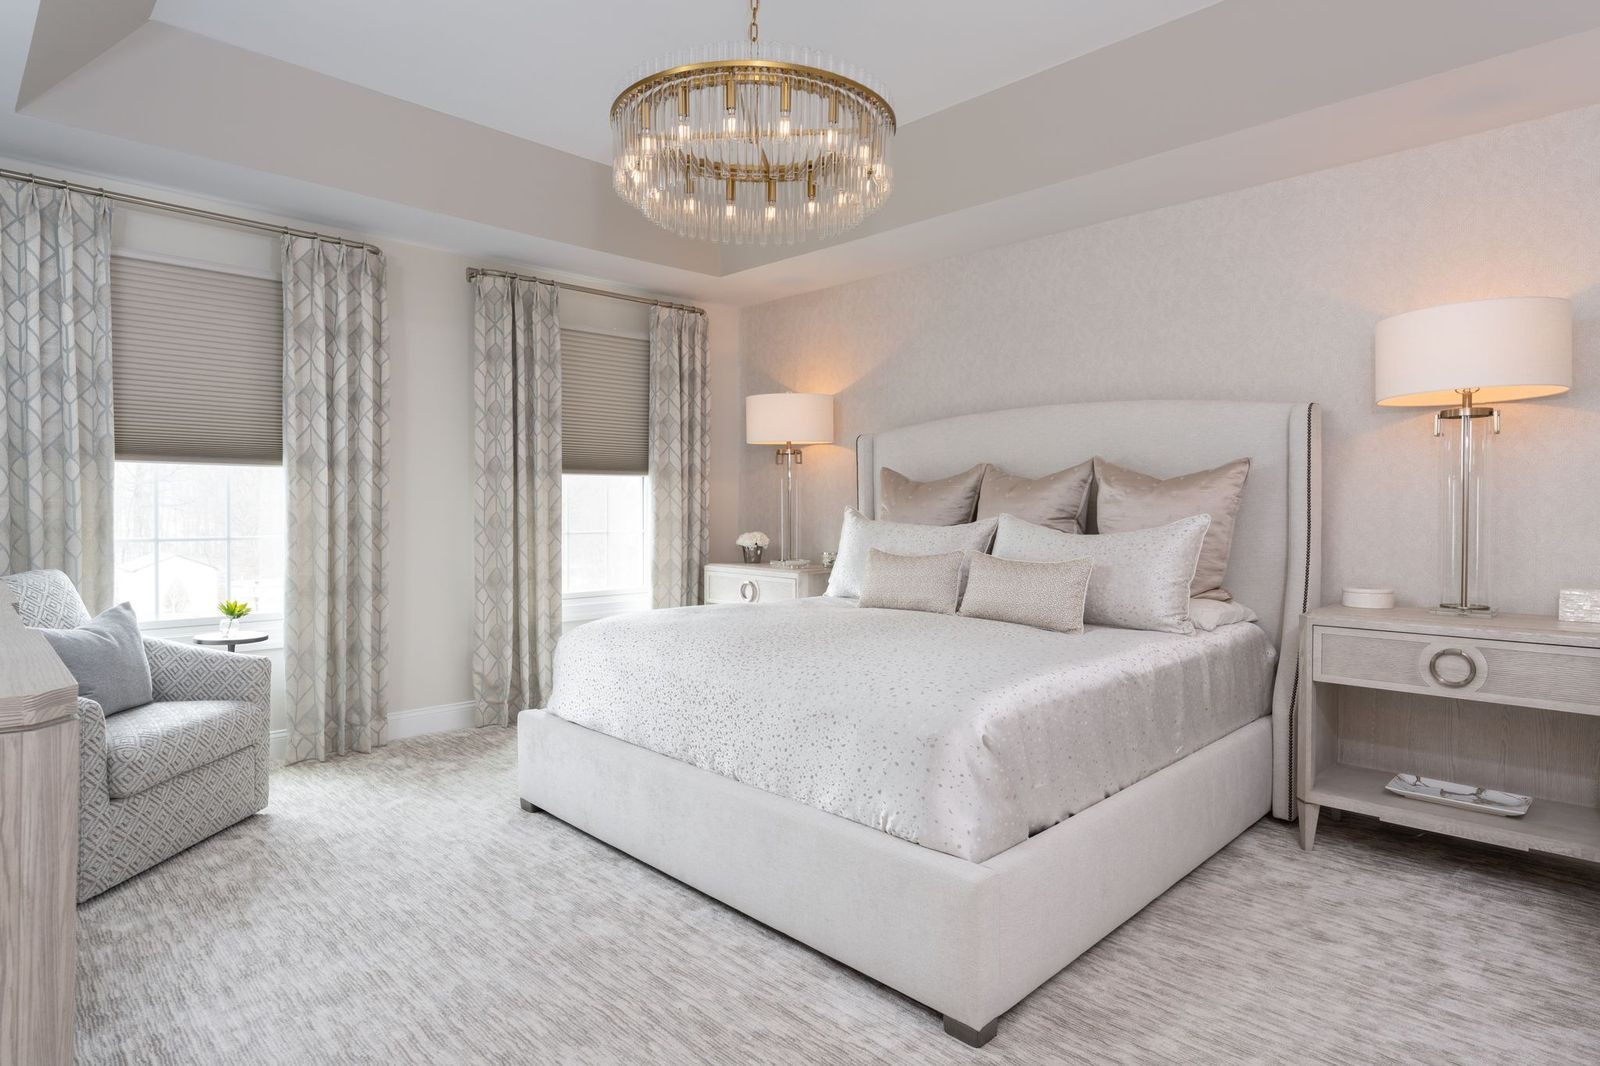 Lower Gwyneed, PA: Luxury Master Bedroom